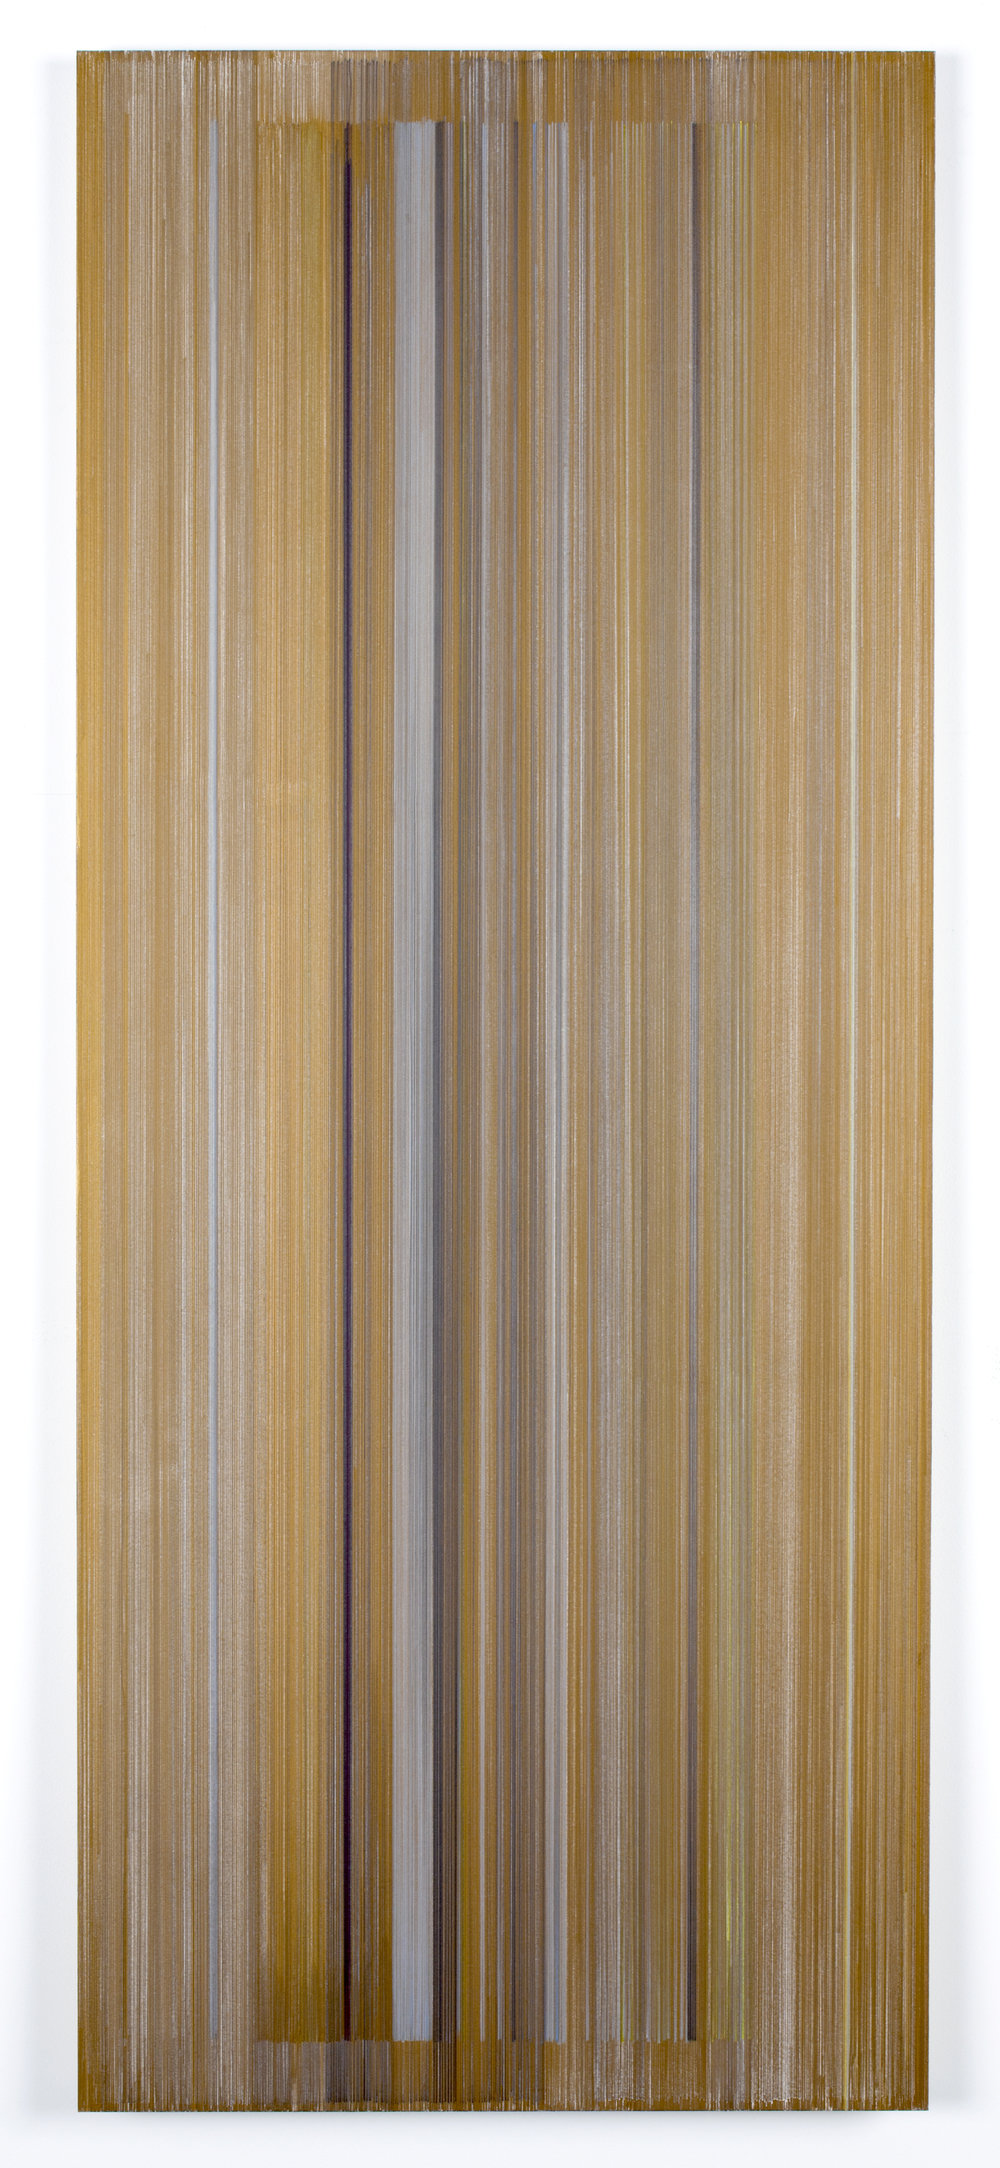 the light has passed   2016   graphite & colored pencil on mat board   24 by 58 inches